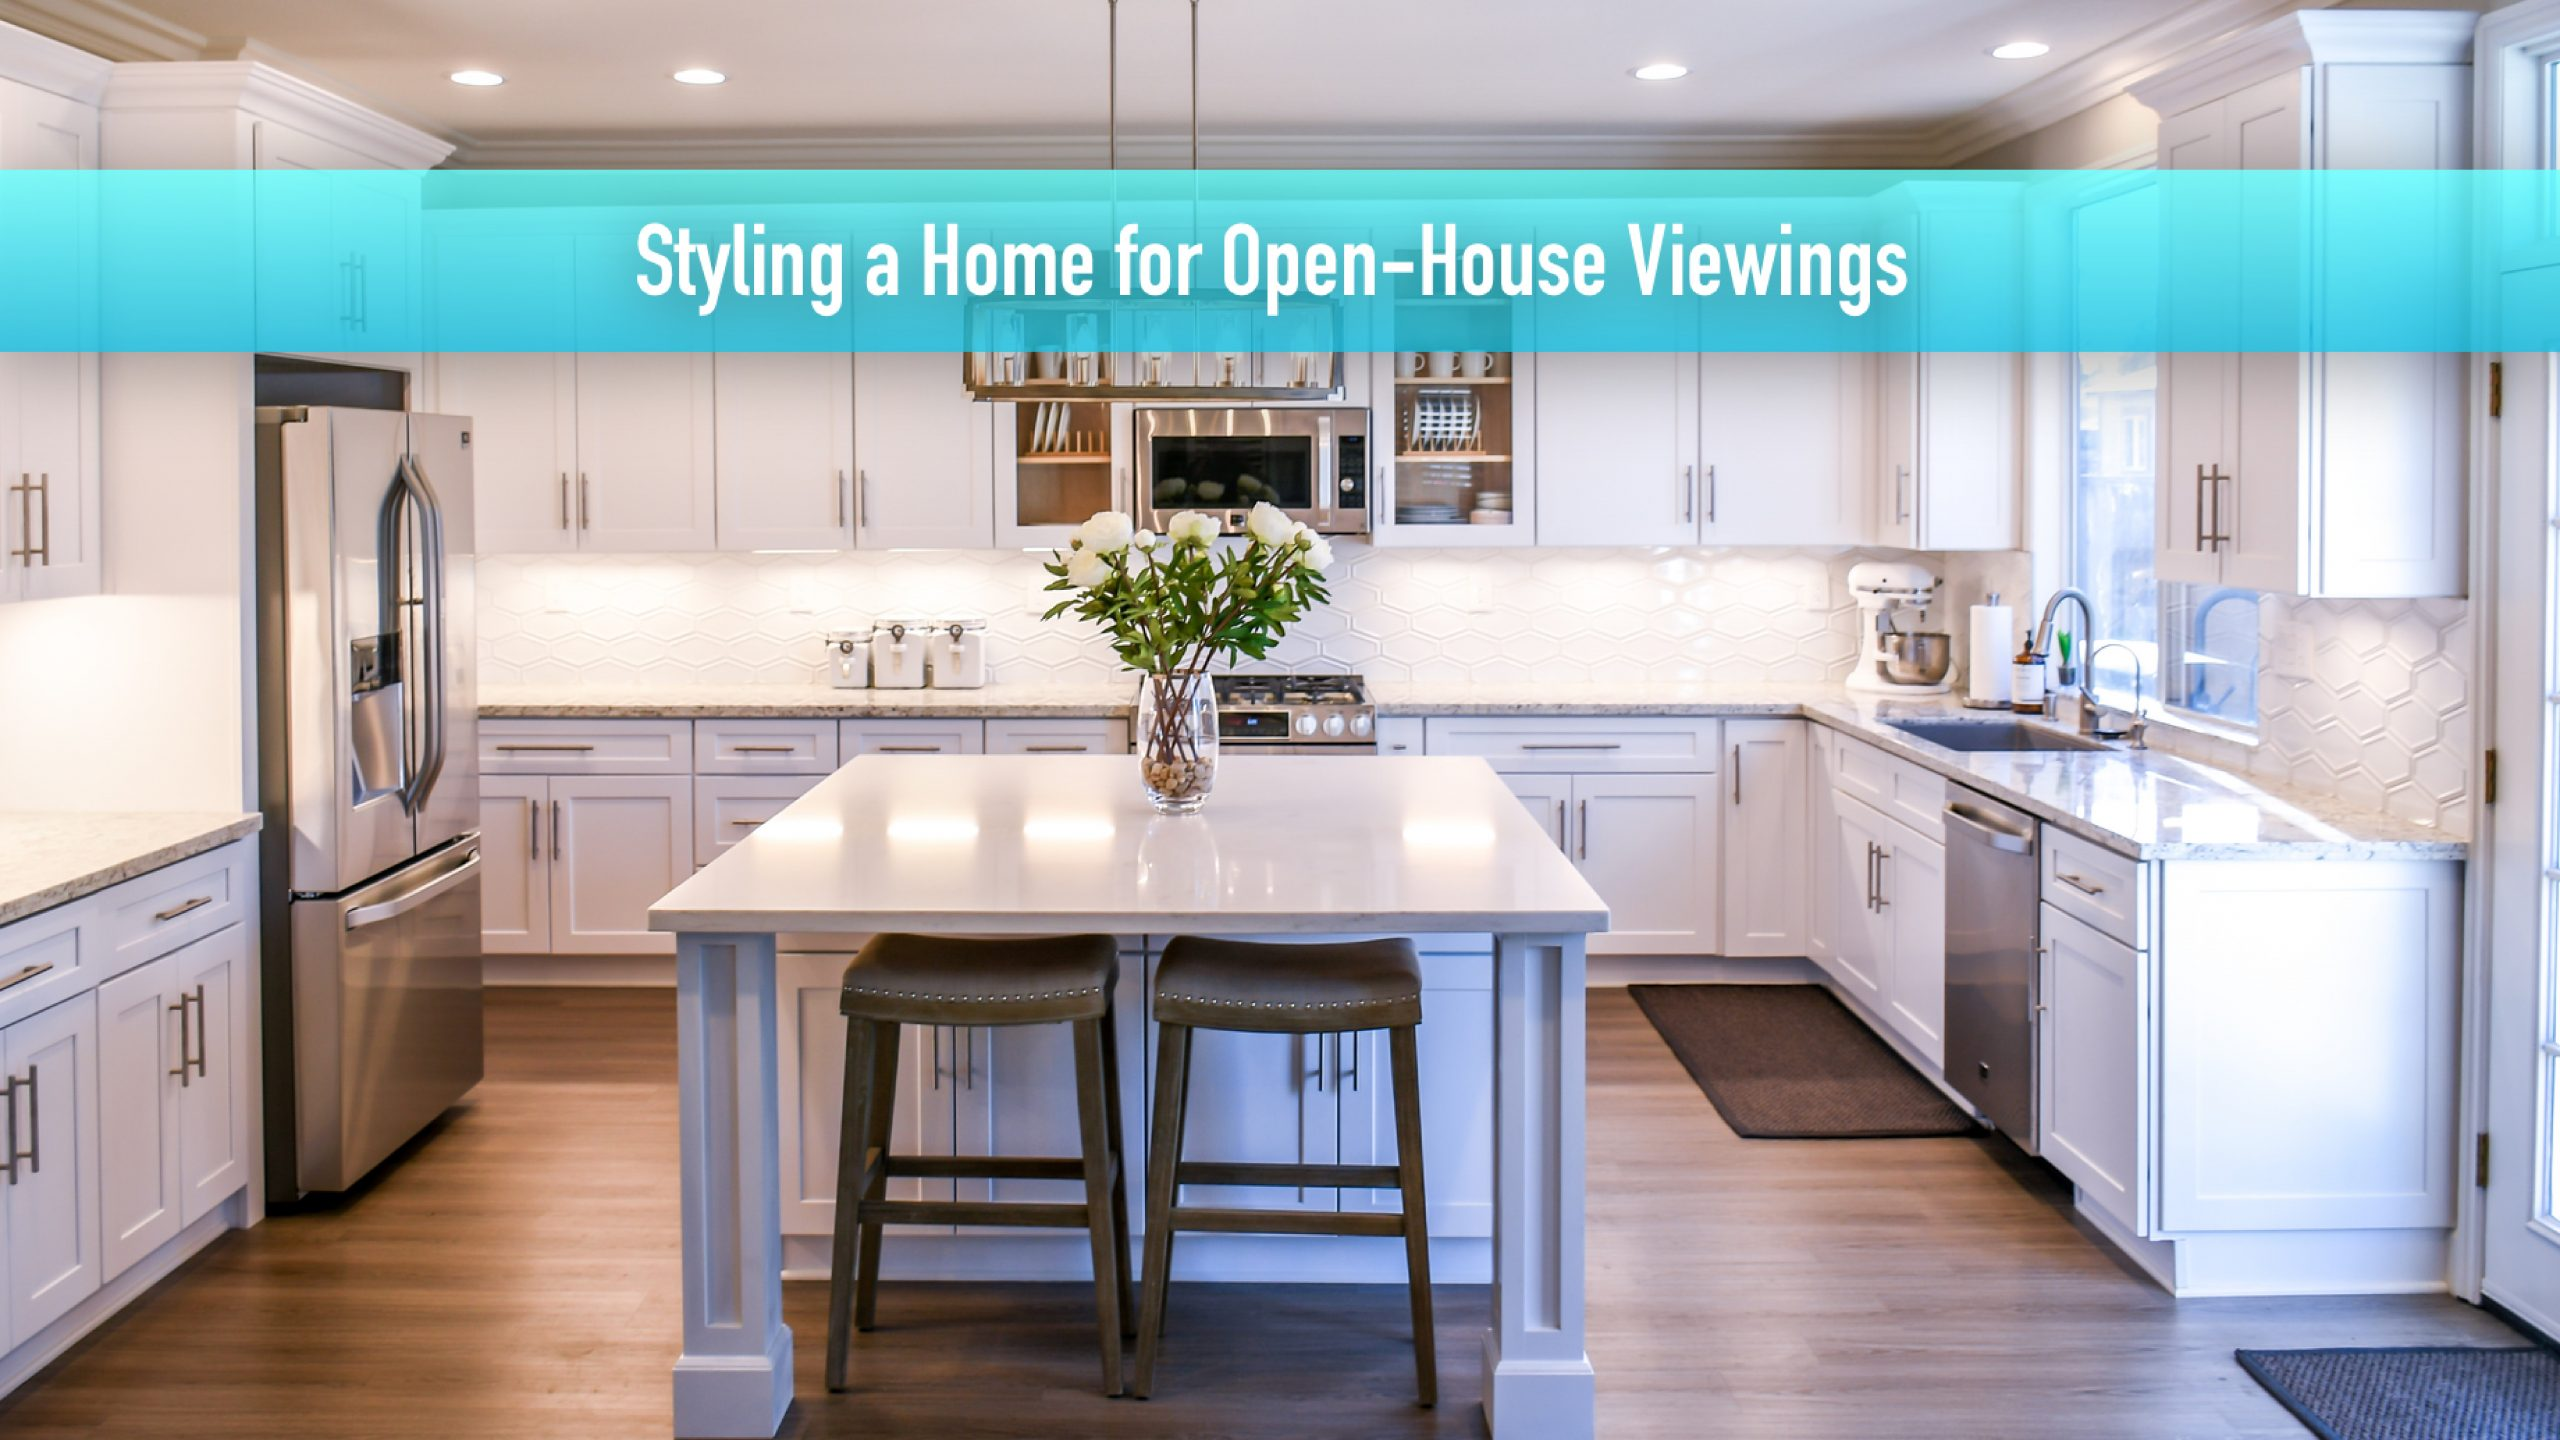 Styling a Home for Open-House Viewings